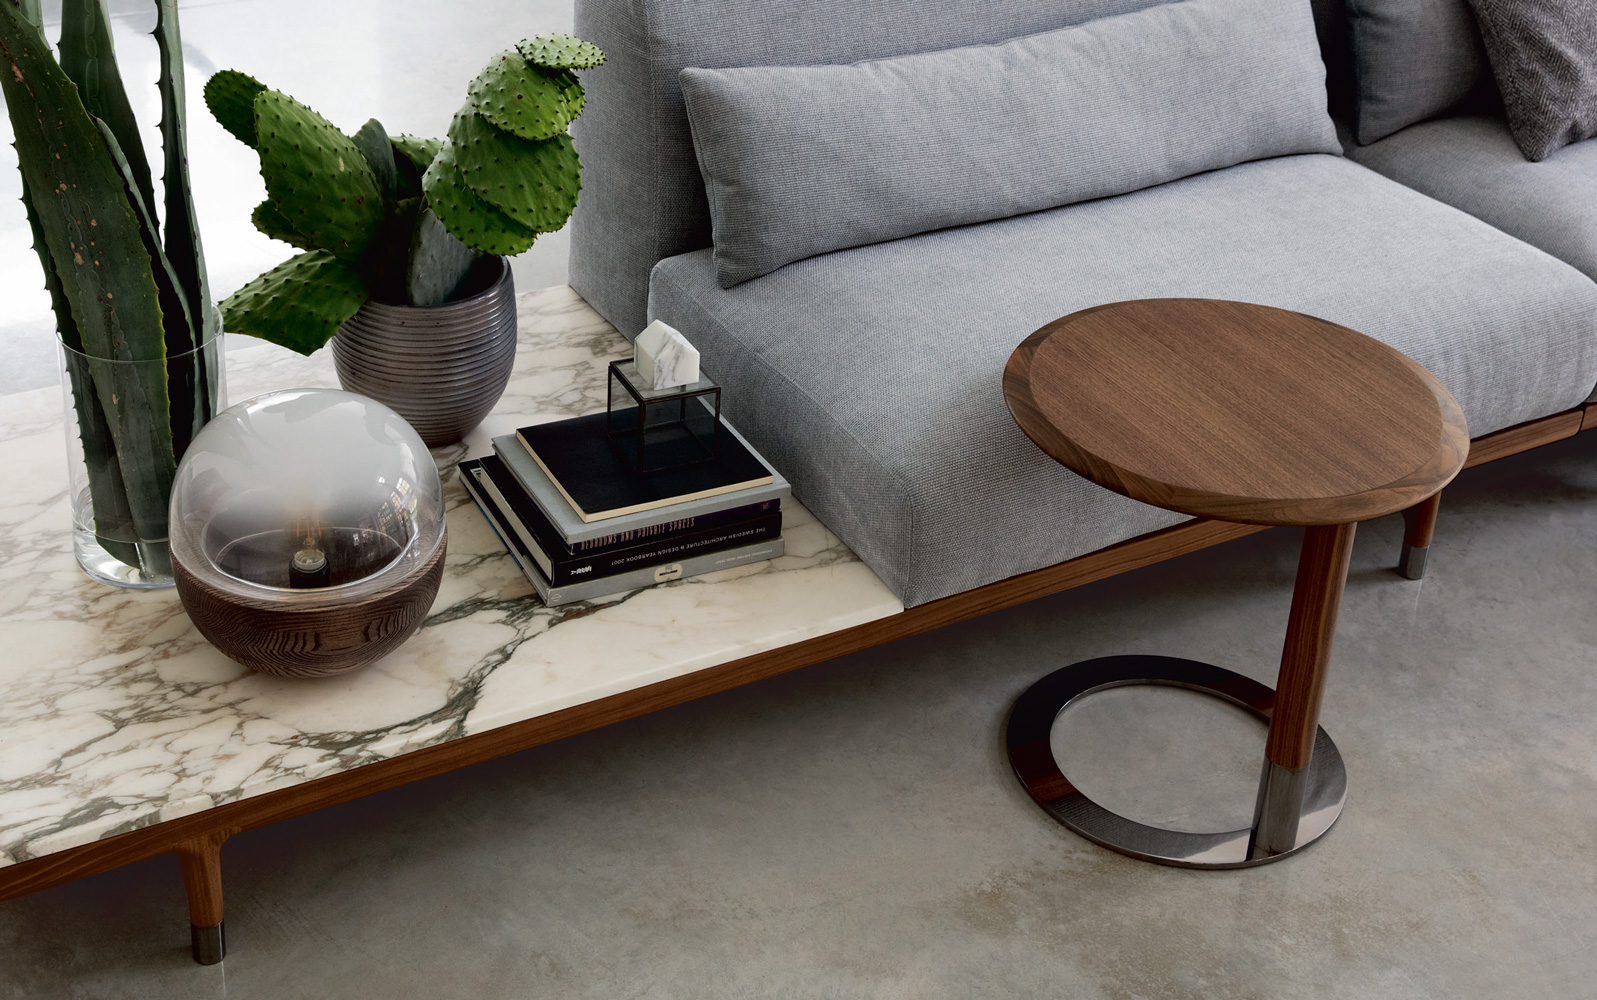 Jok Table.Italian Jok Side Table Italian Designer Luxury Furniture At Cassoni